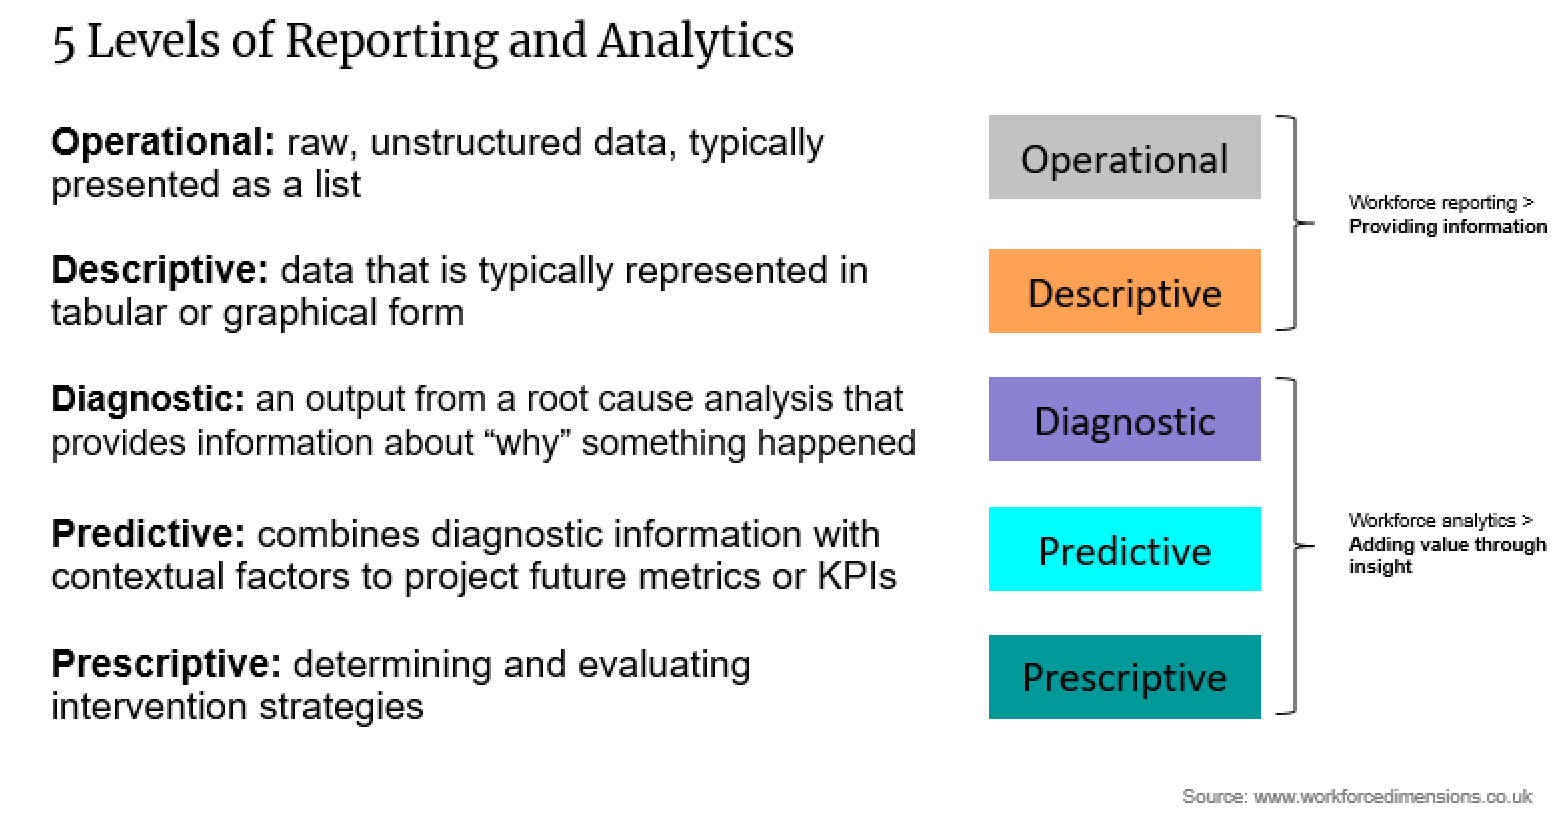 5 Levels of Reporting and Analytics